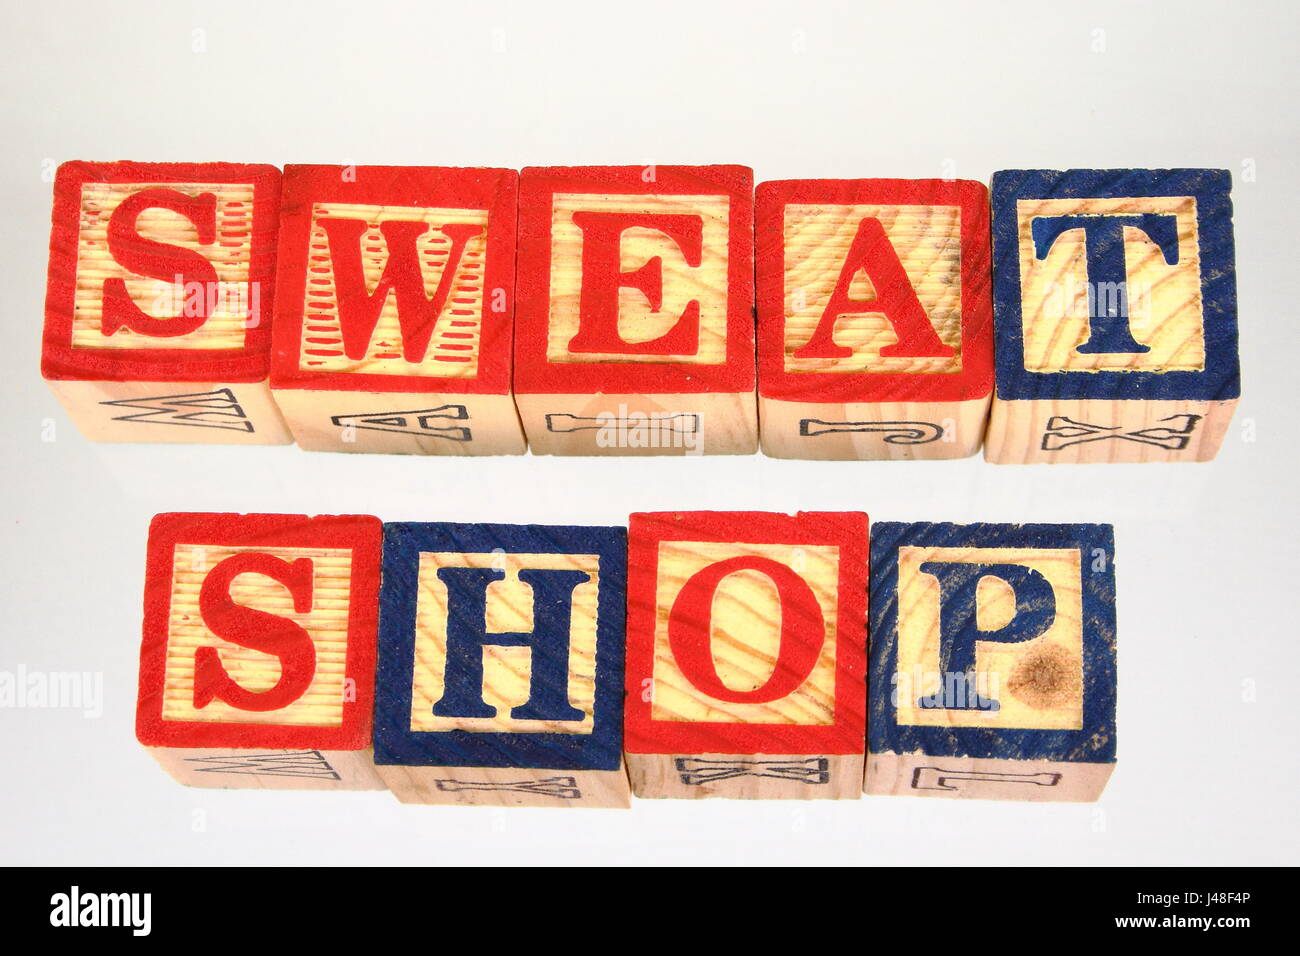 The phrase sweat shop displayed visually on a white background using colorful wooden blocks - Stock Image